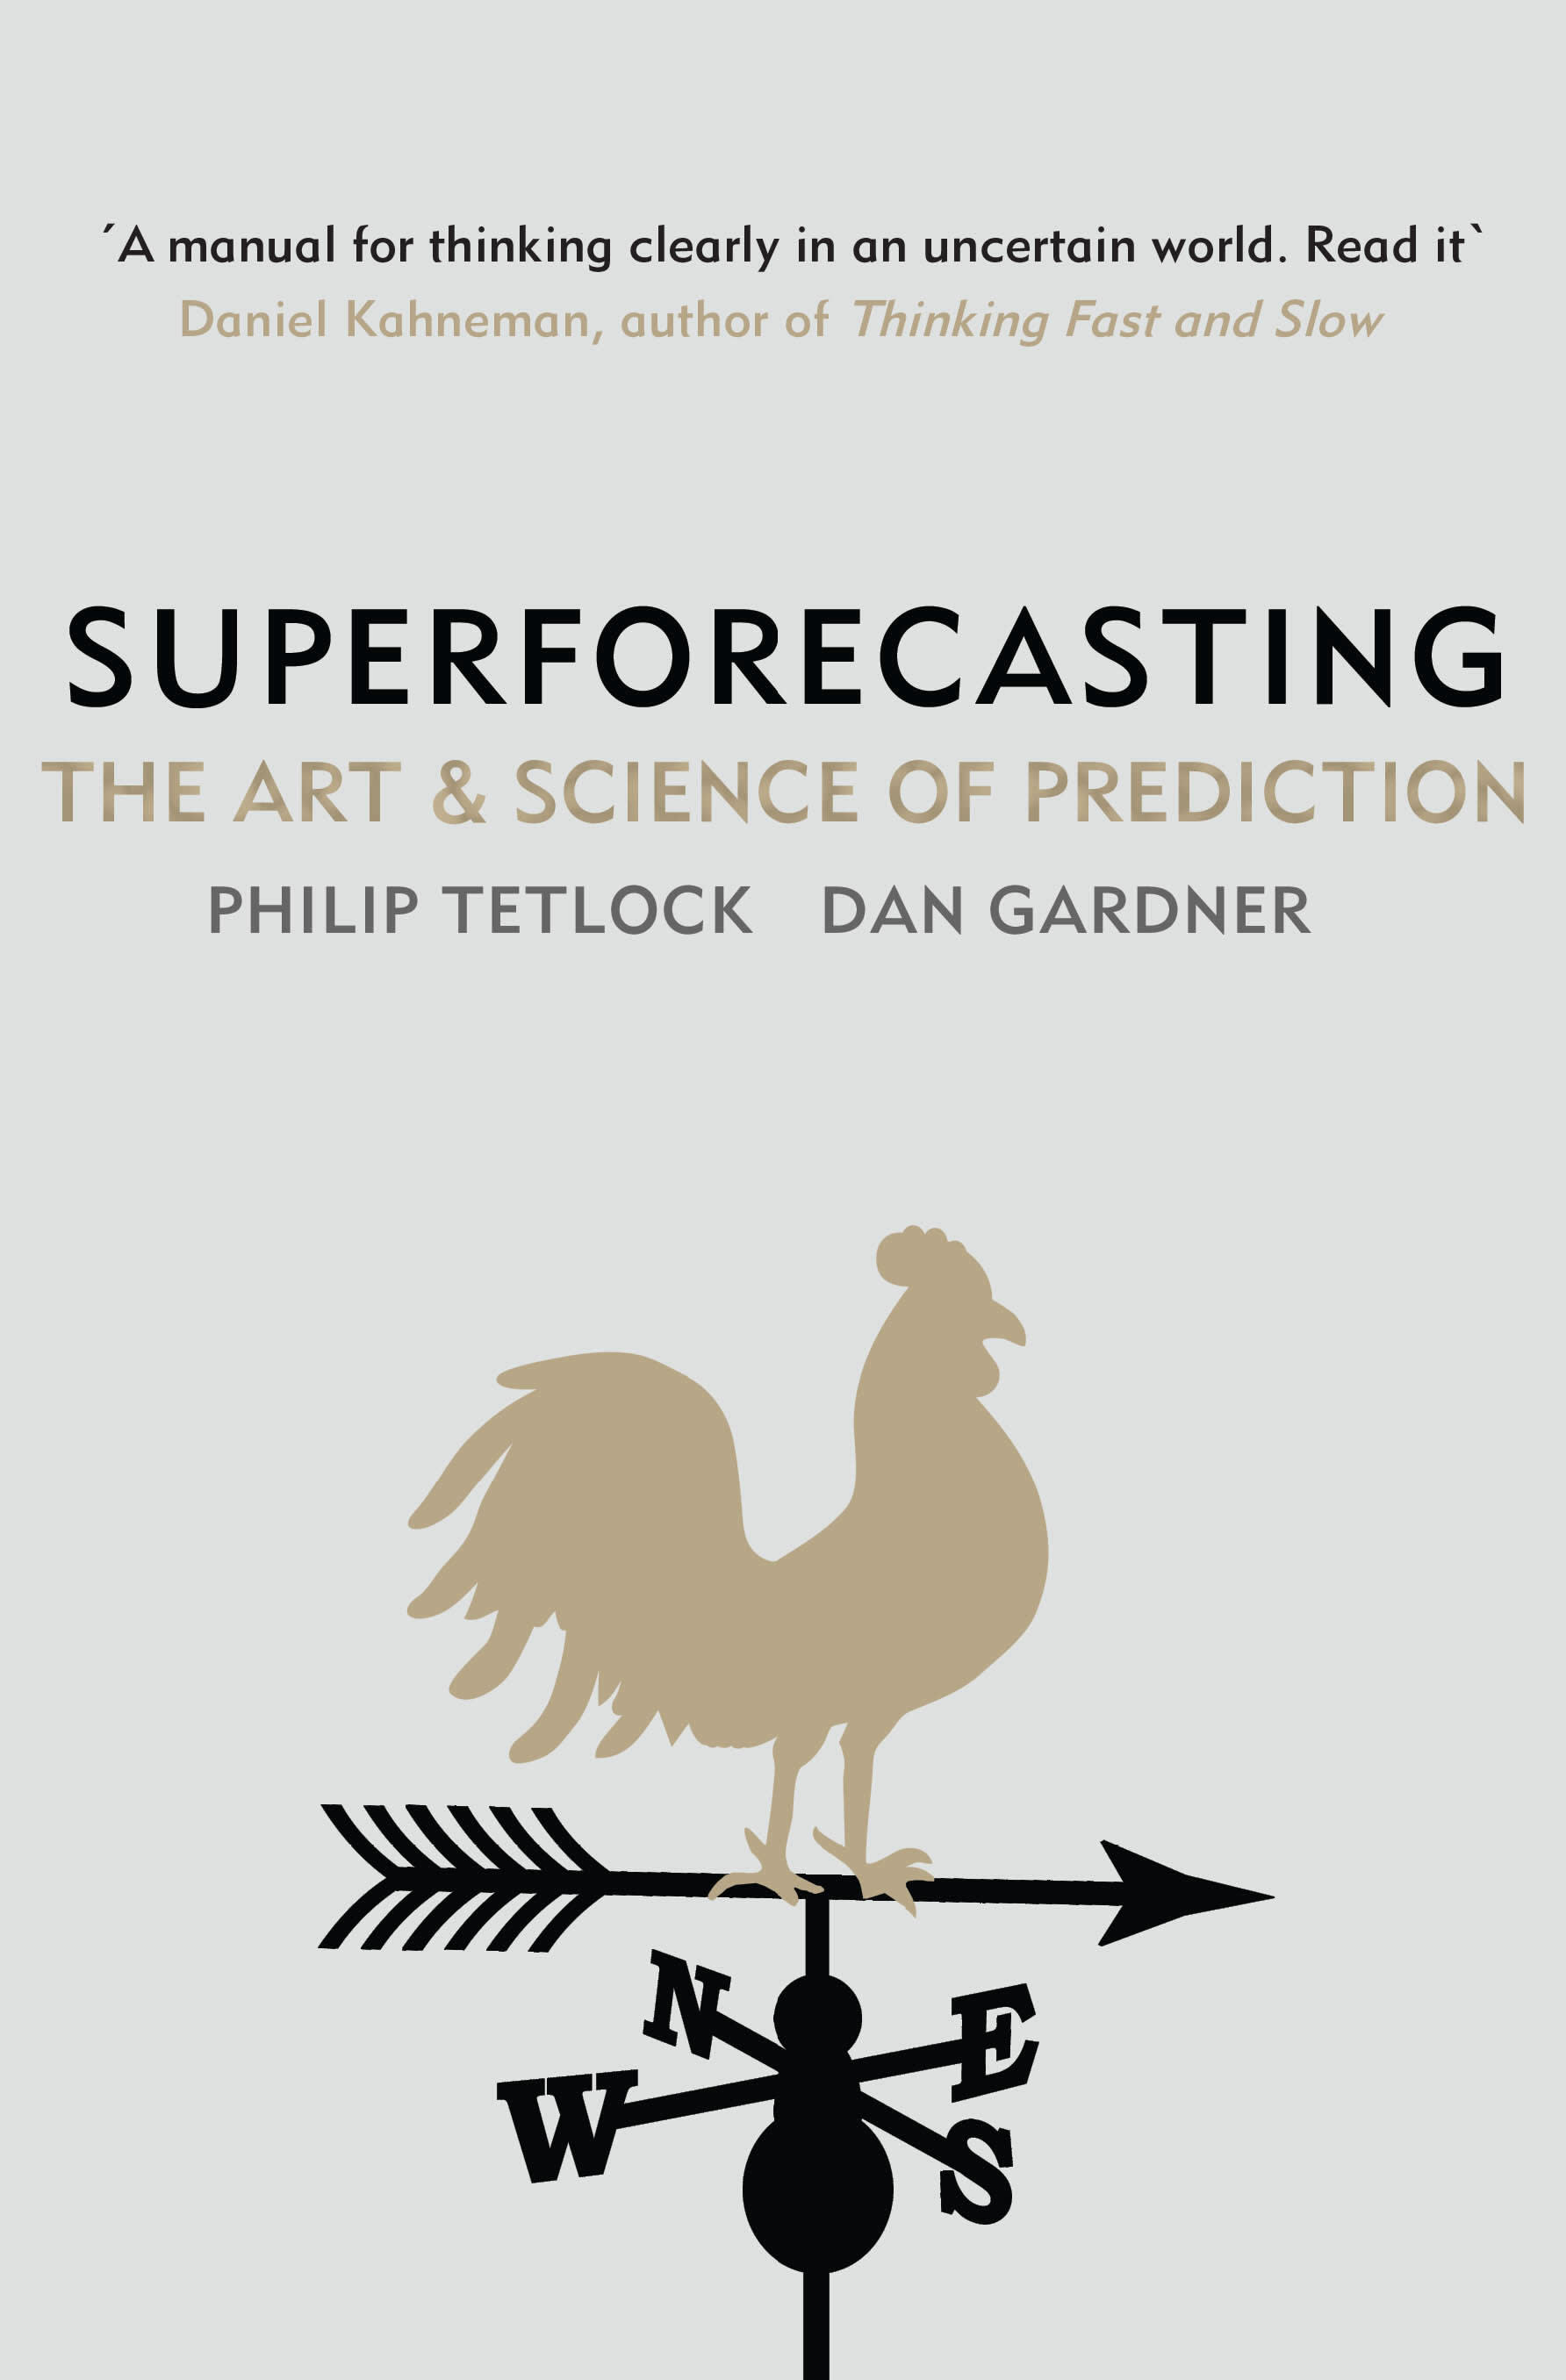 Superforecasting by Philip Tetlock, Dan Gardner